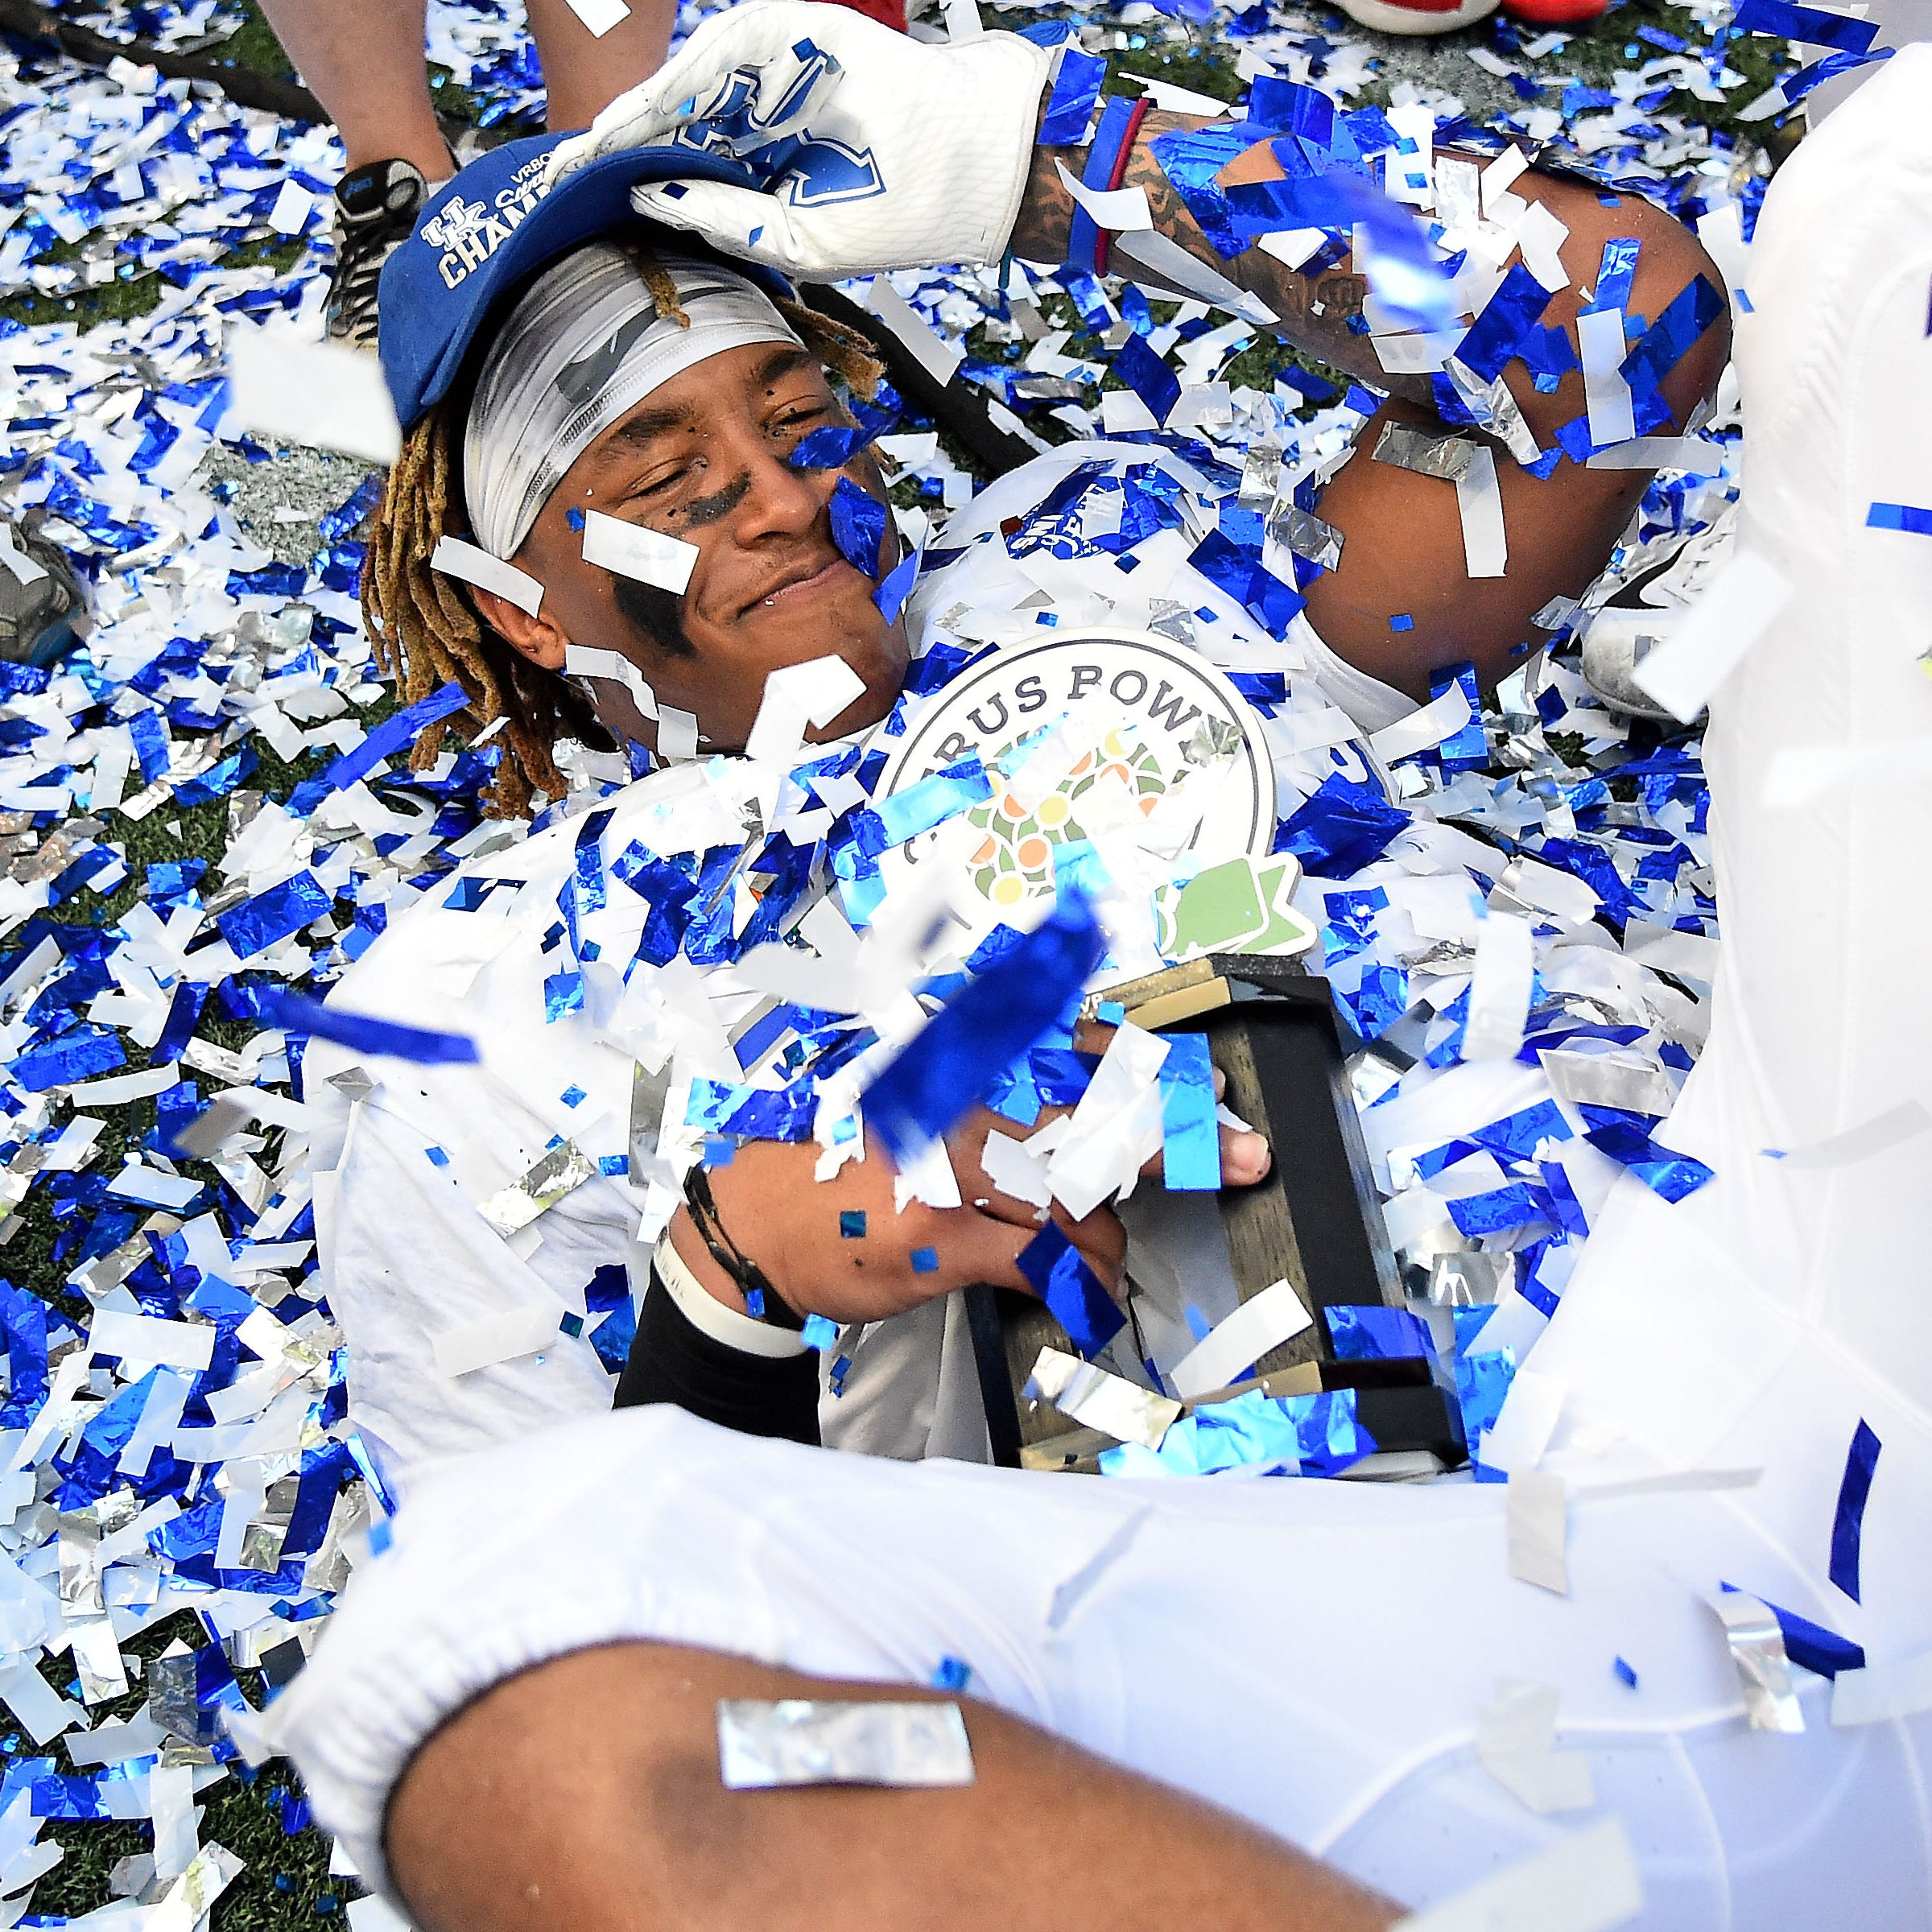 Pittsburgh Steelers fans, meet fourth-round NFL draft pick Benny Snell